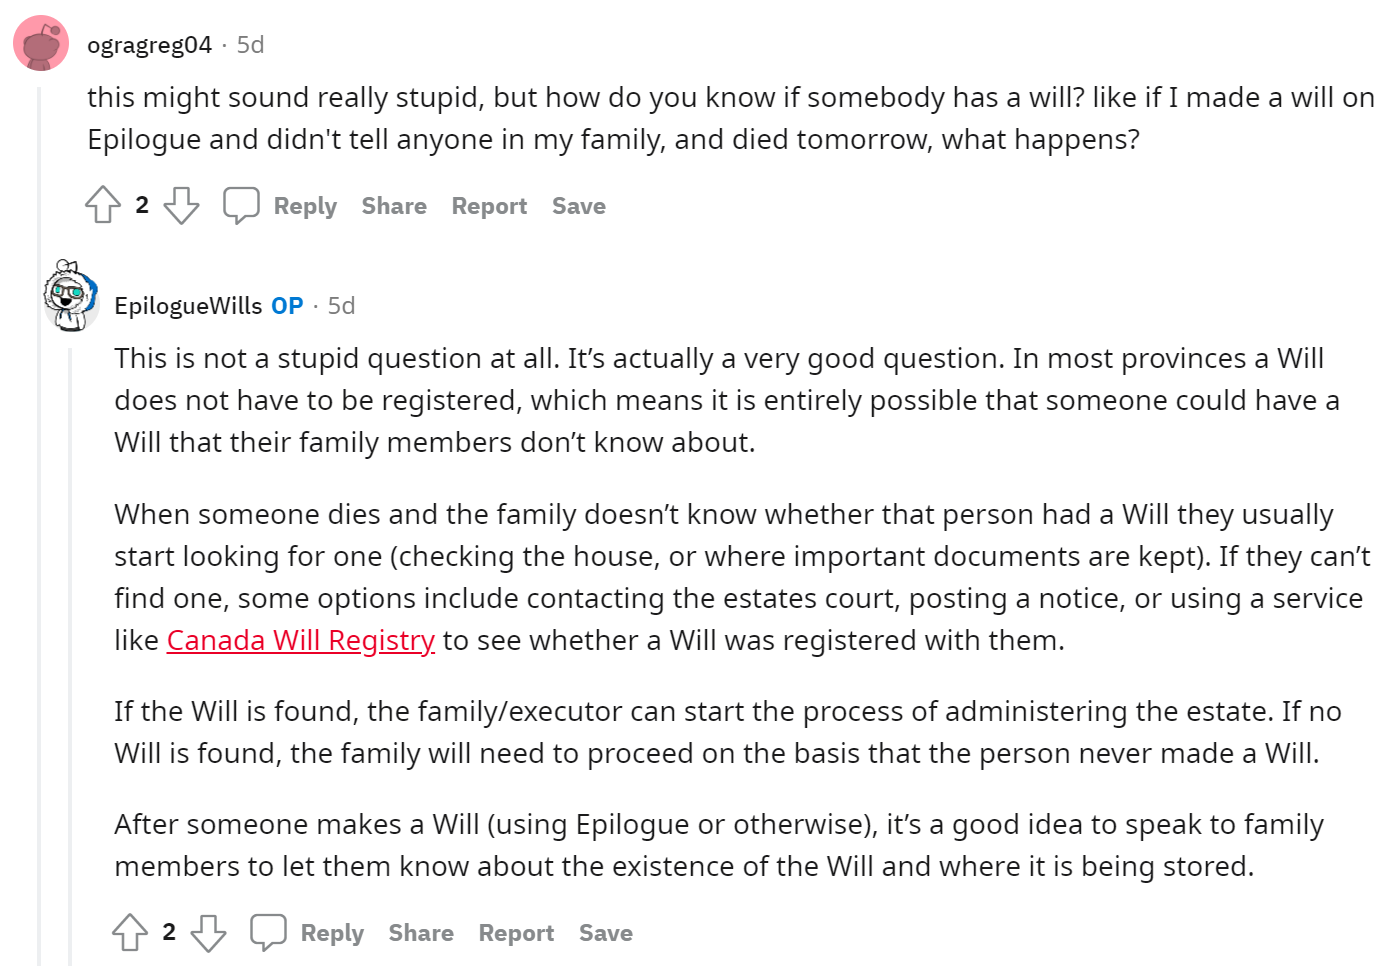 Epilogue Wills Reddit AMA - How Does Someone Know About A Will